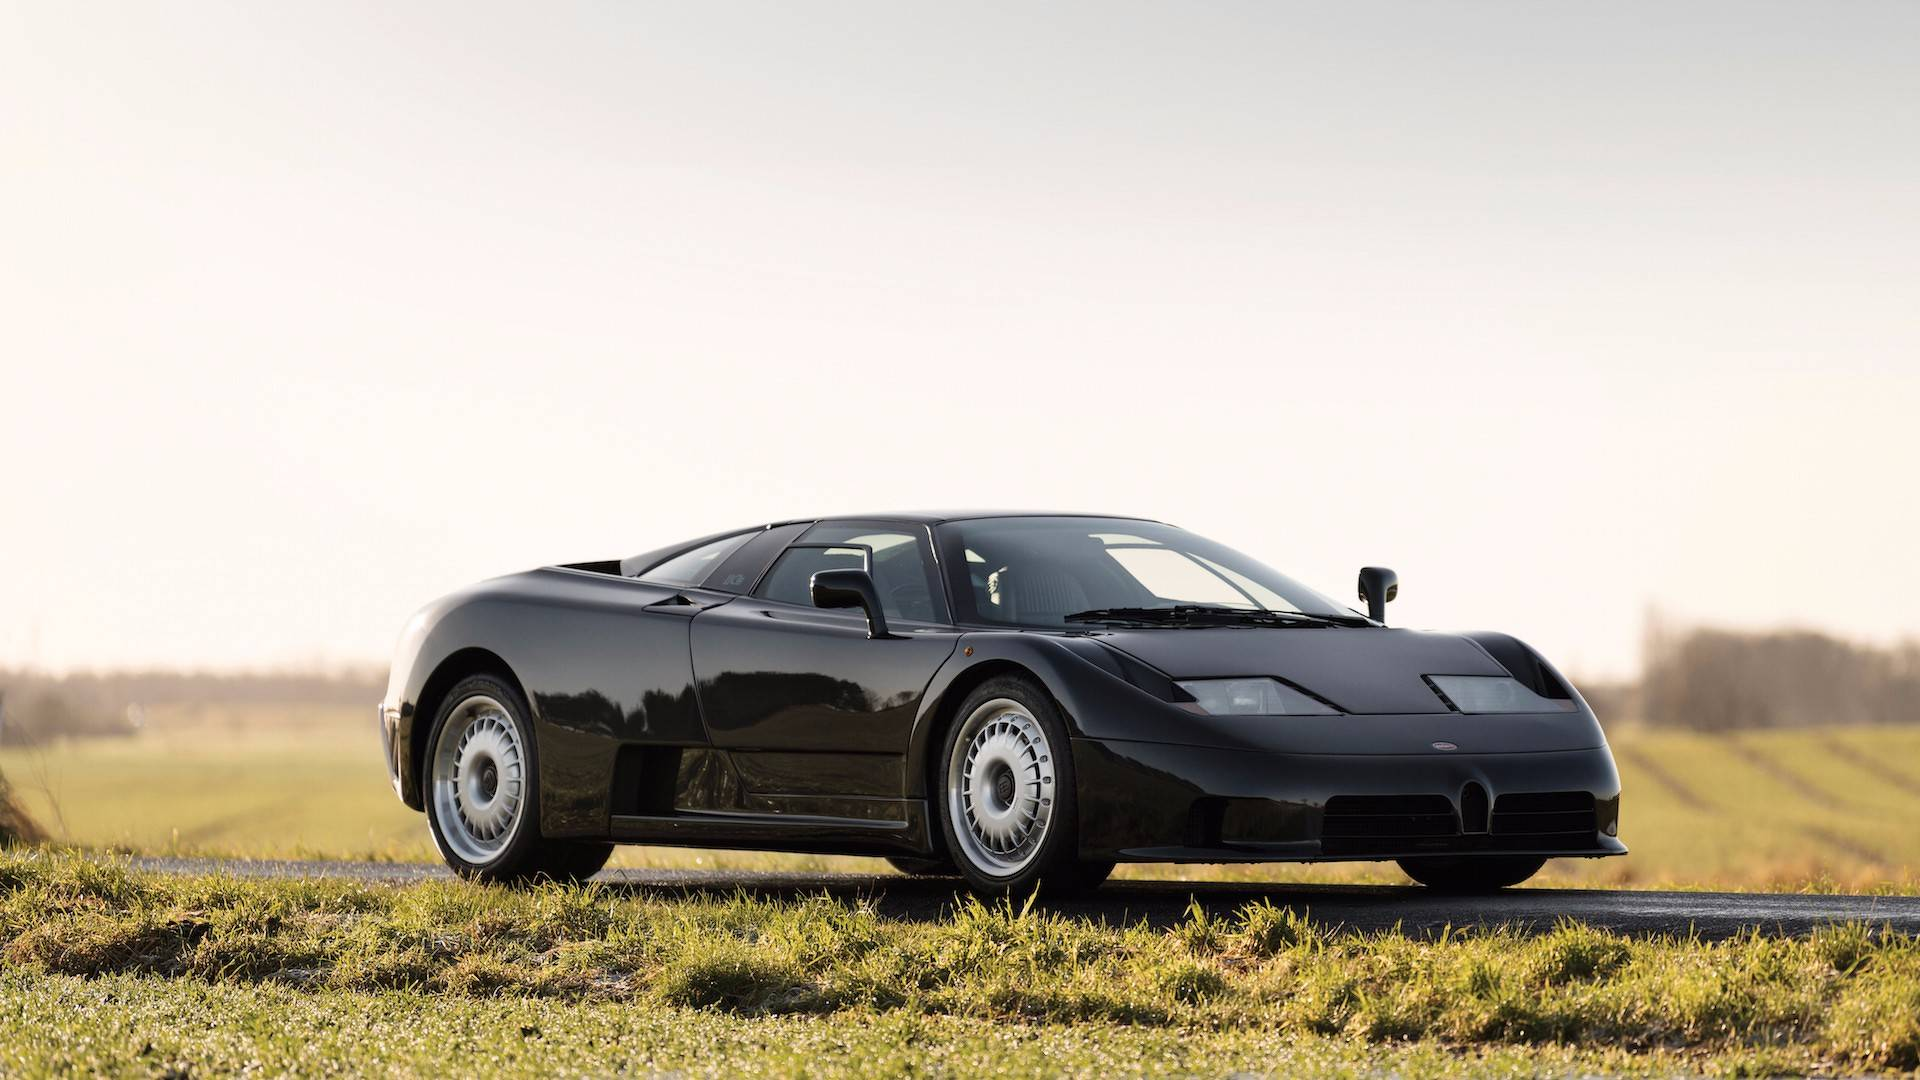 Bugatti EB110 GT at RM Sotheby's